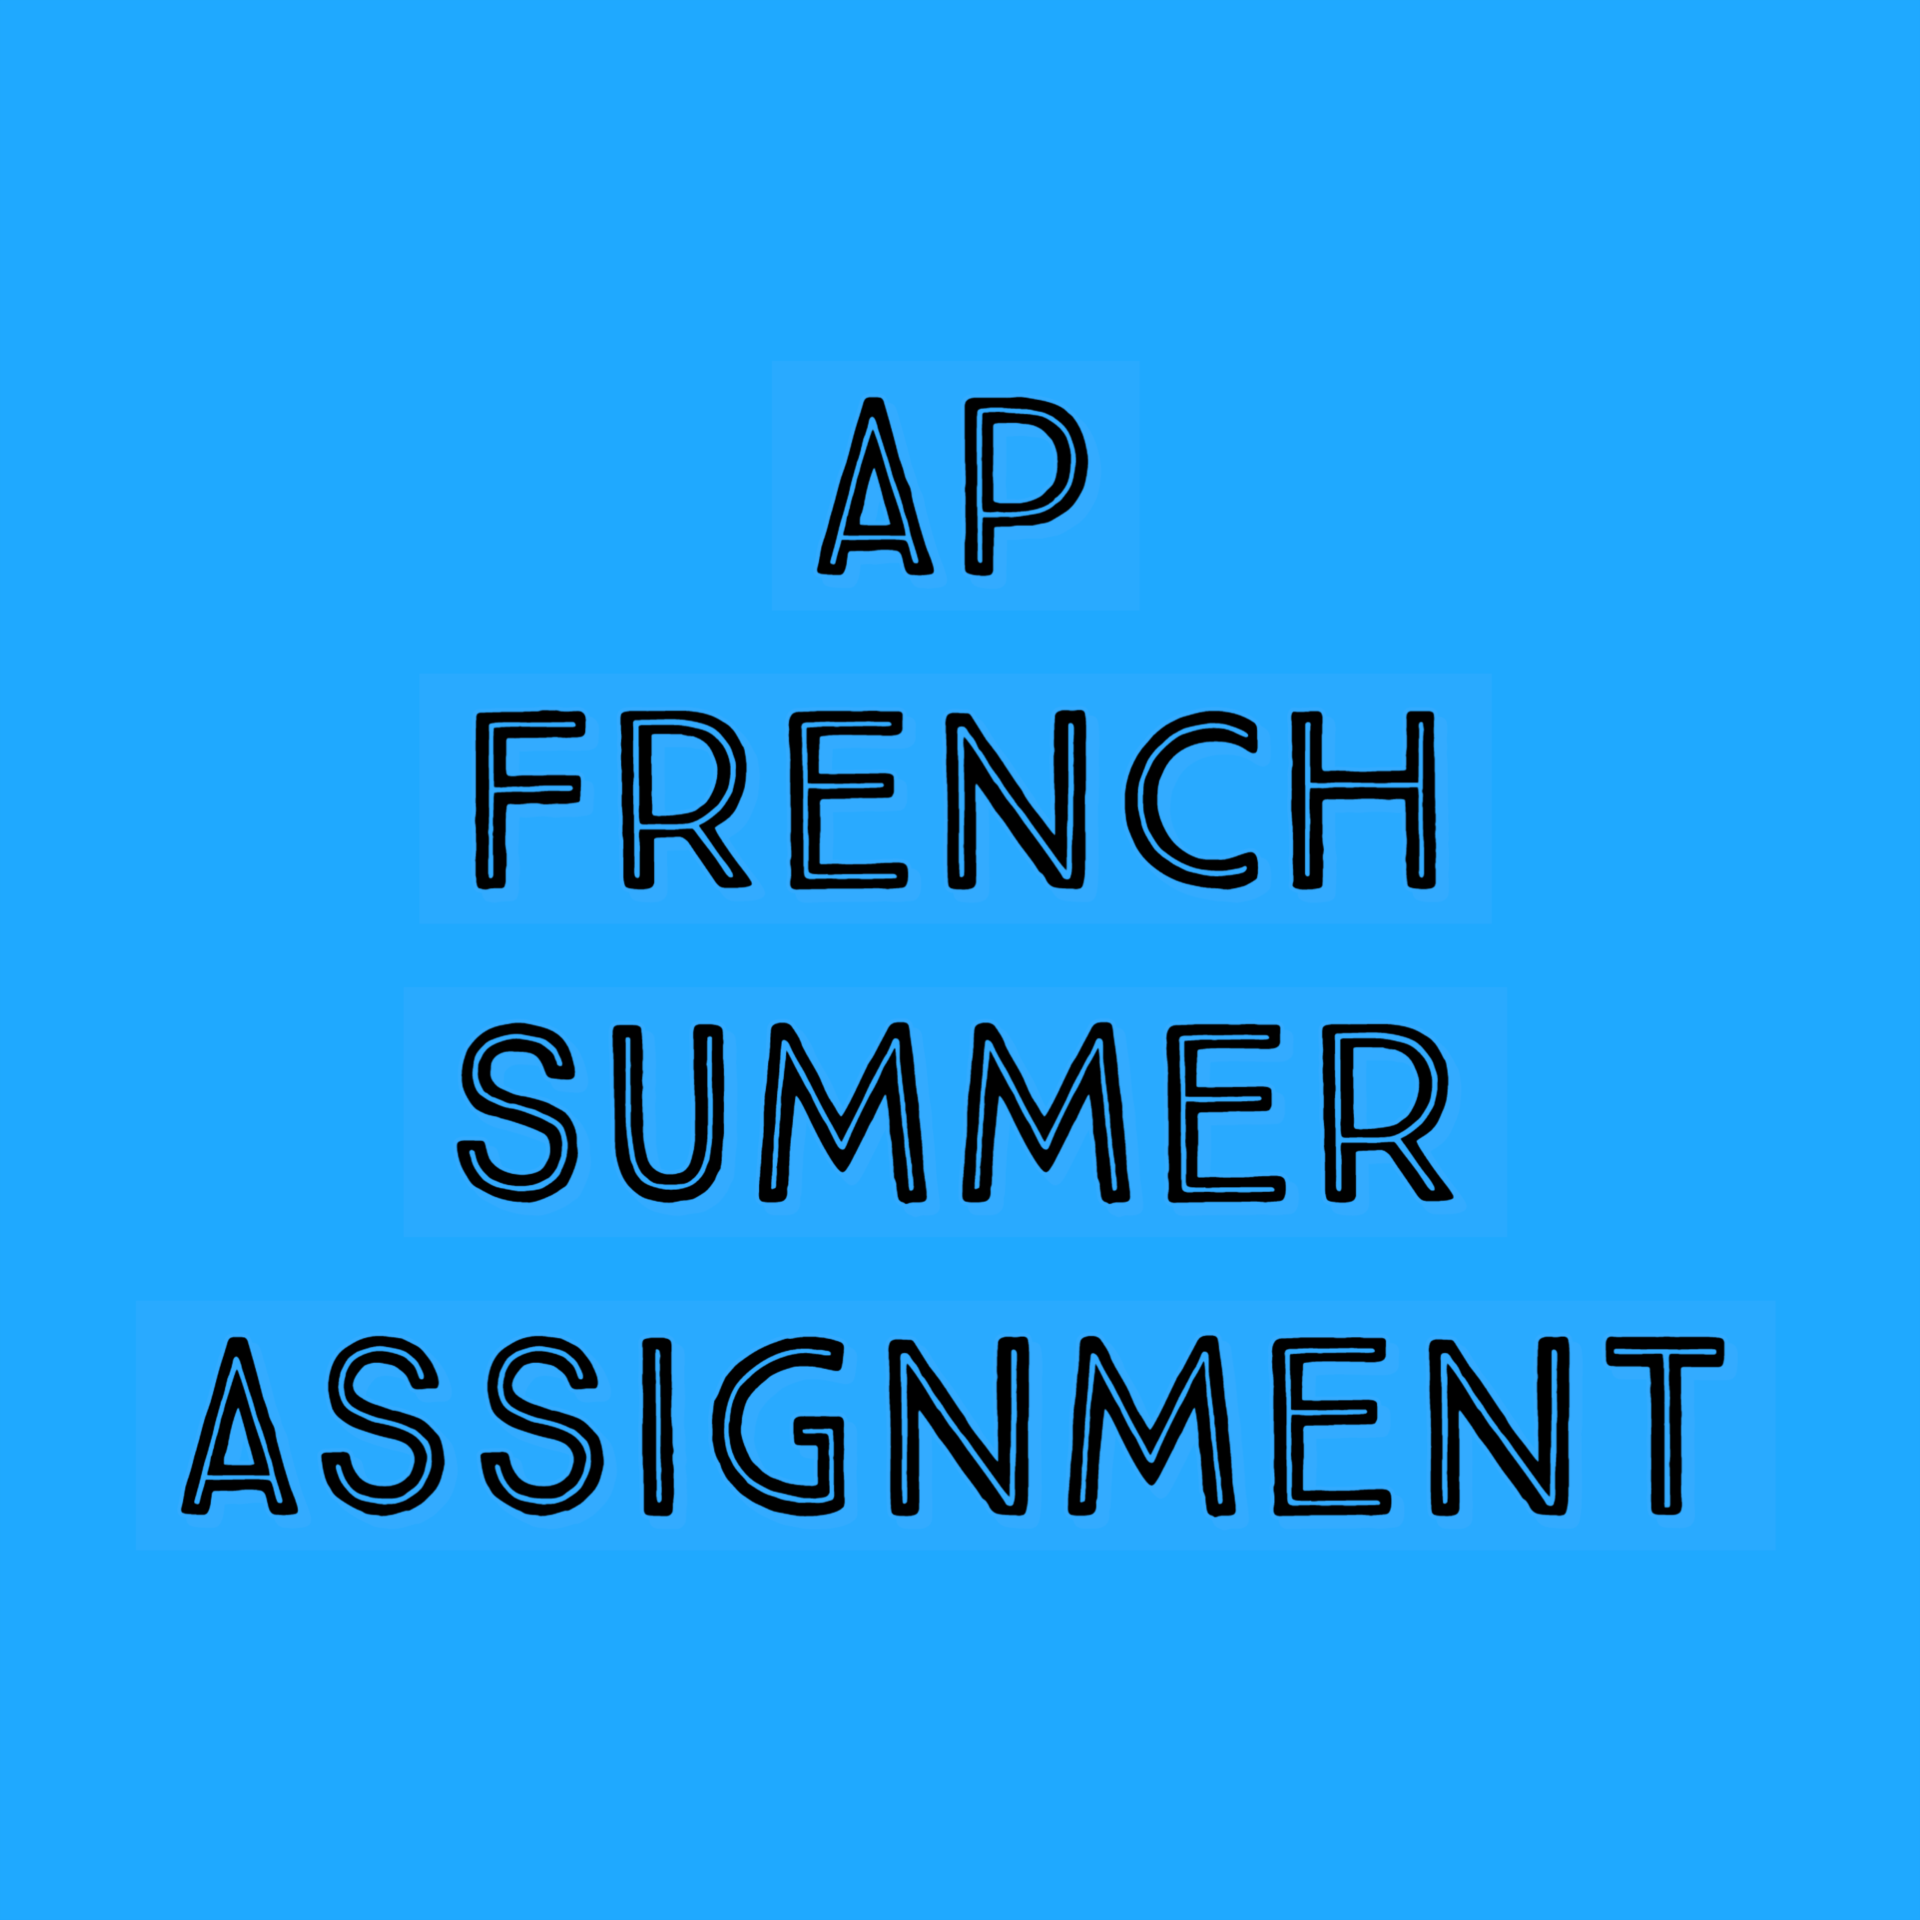 AP FRENCH SUMMER